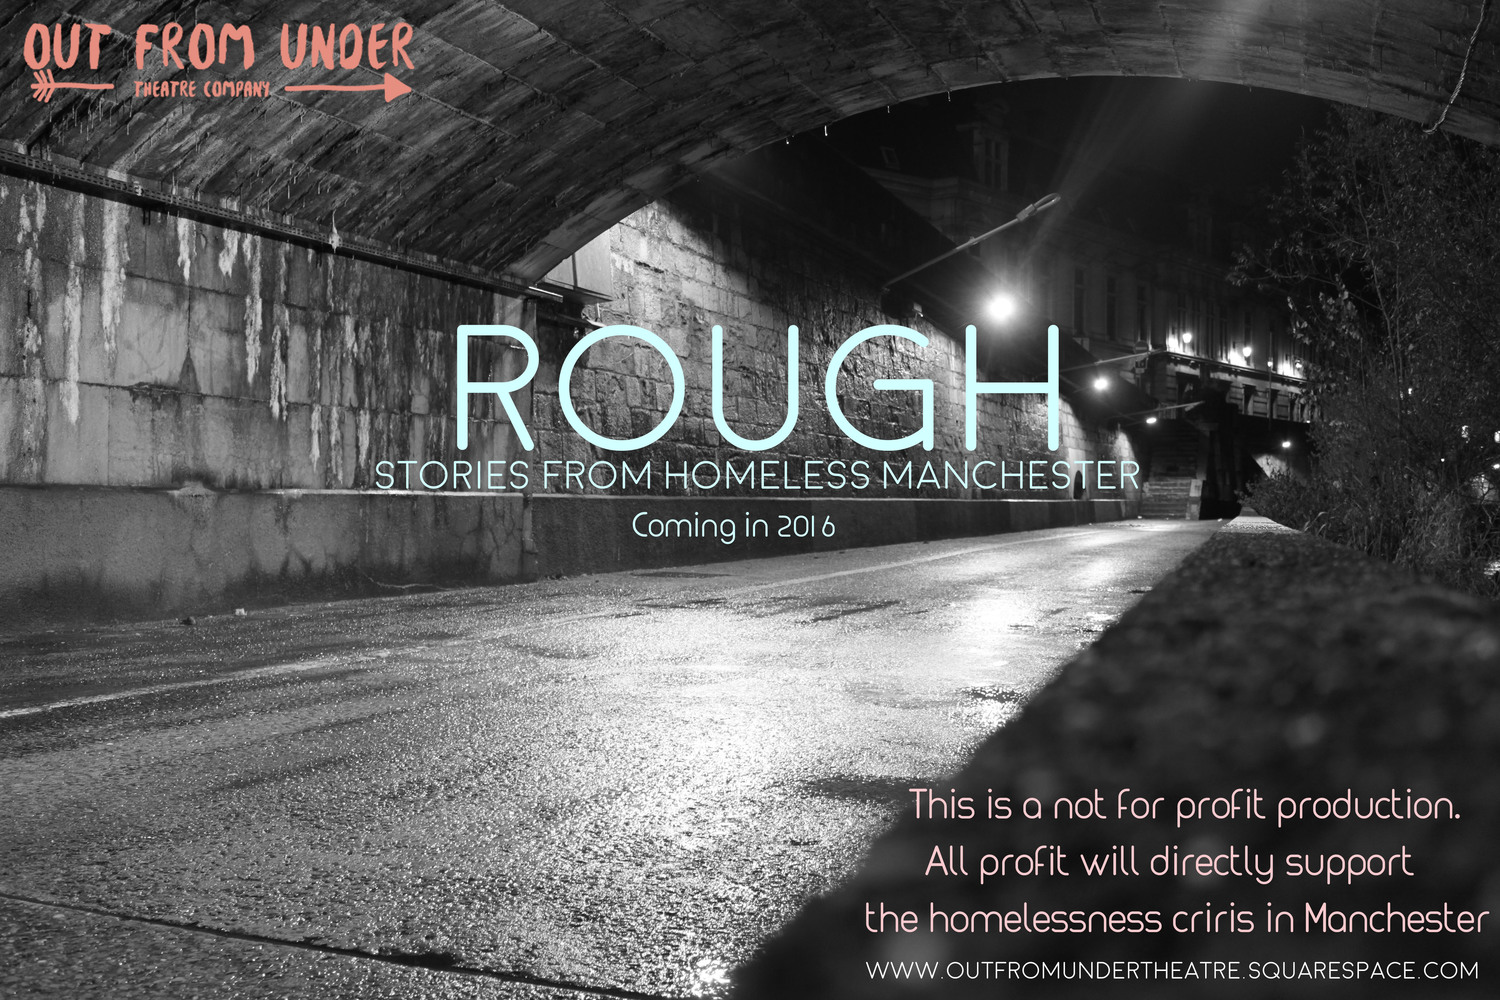 Associate Producer - Rough: Stories of Homeless Manchester by Out from Under Theatre CompanyCurrently in R&D. A project understanding and developing work around those experiencing homelessness and hidden homelessness, telling their stories and those of the activists, support workers, volunteers and members of the public whom support them.